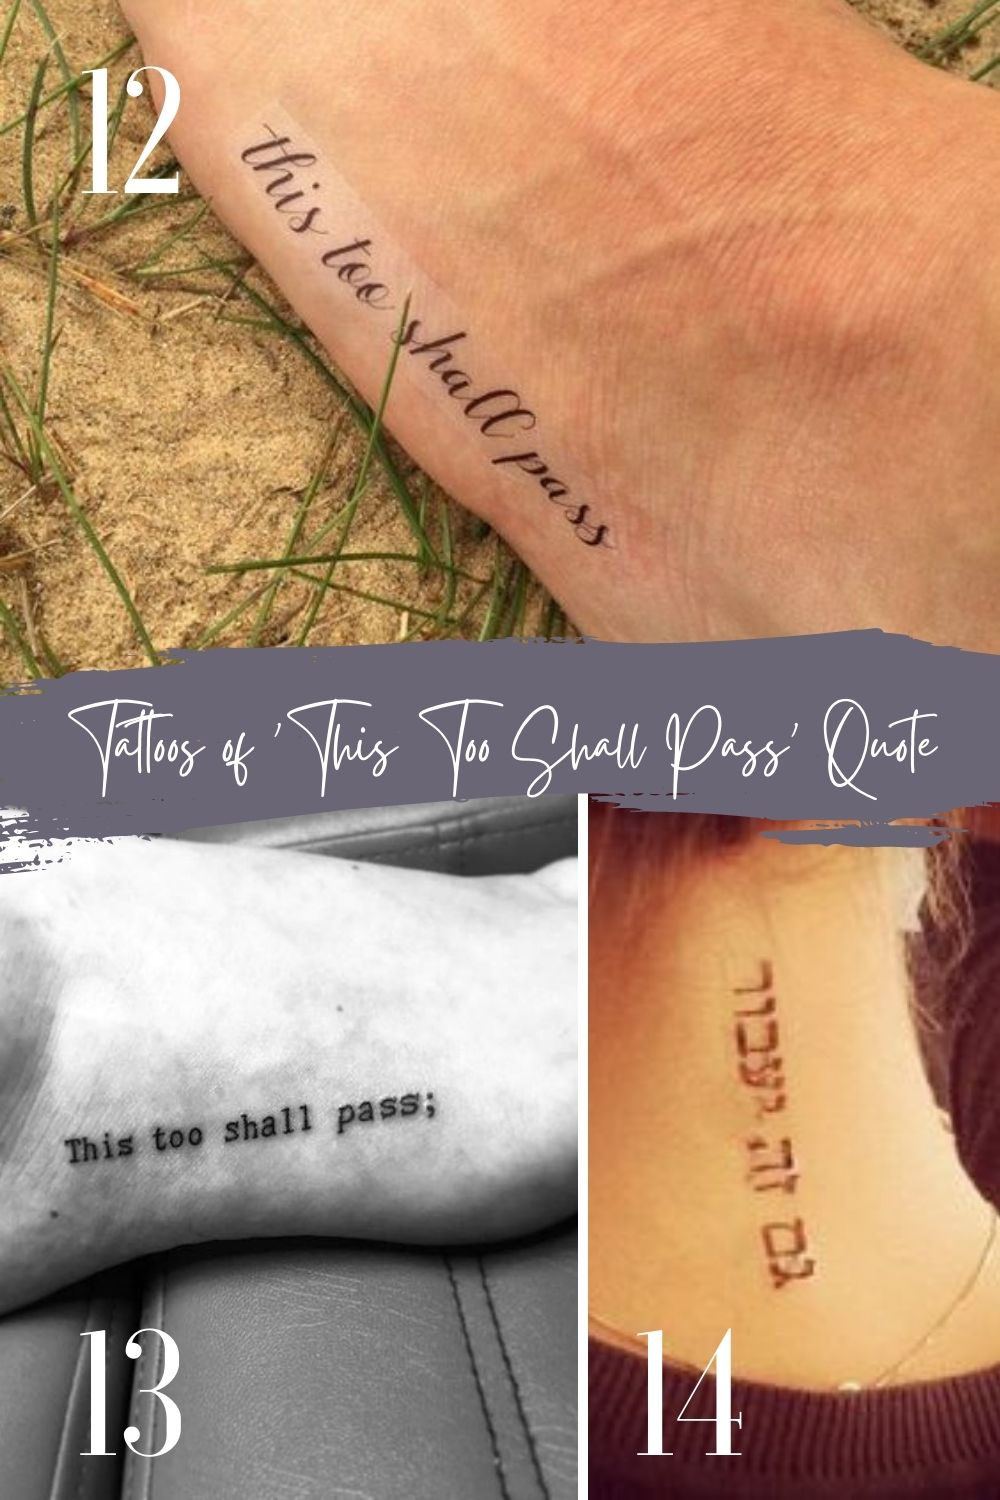 This too shall pass tattoo Hebrew